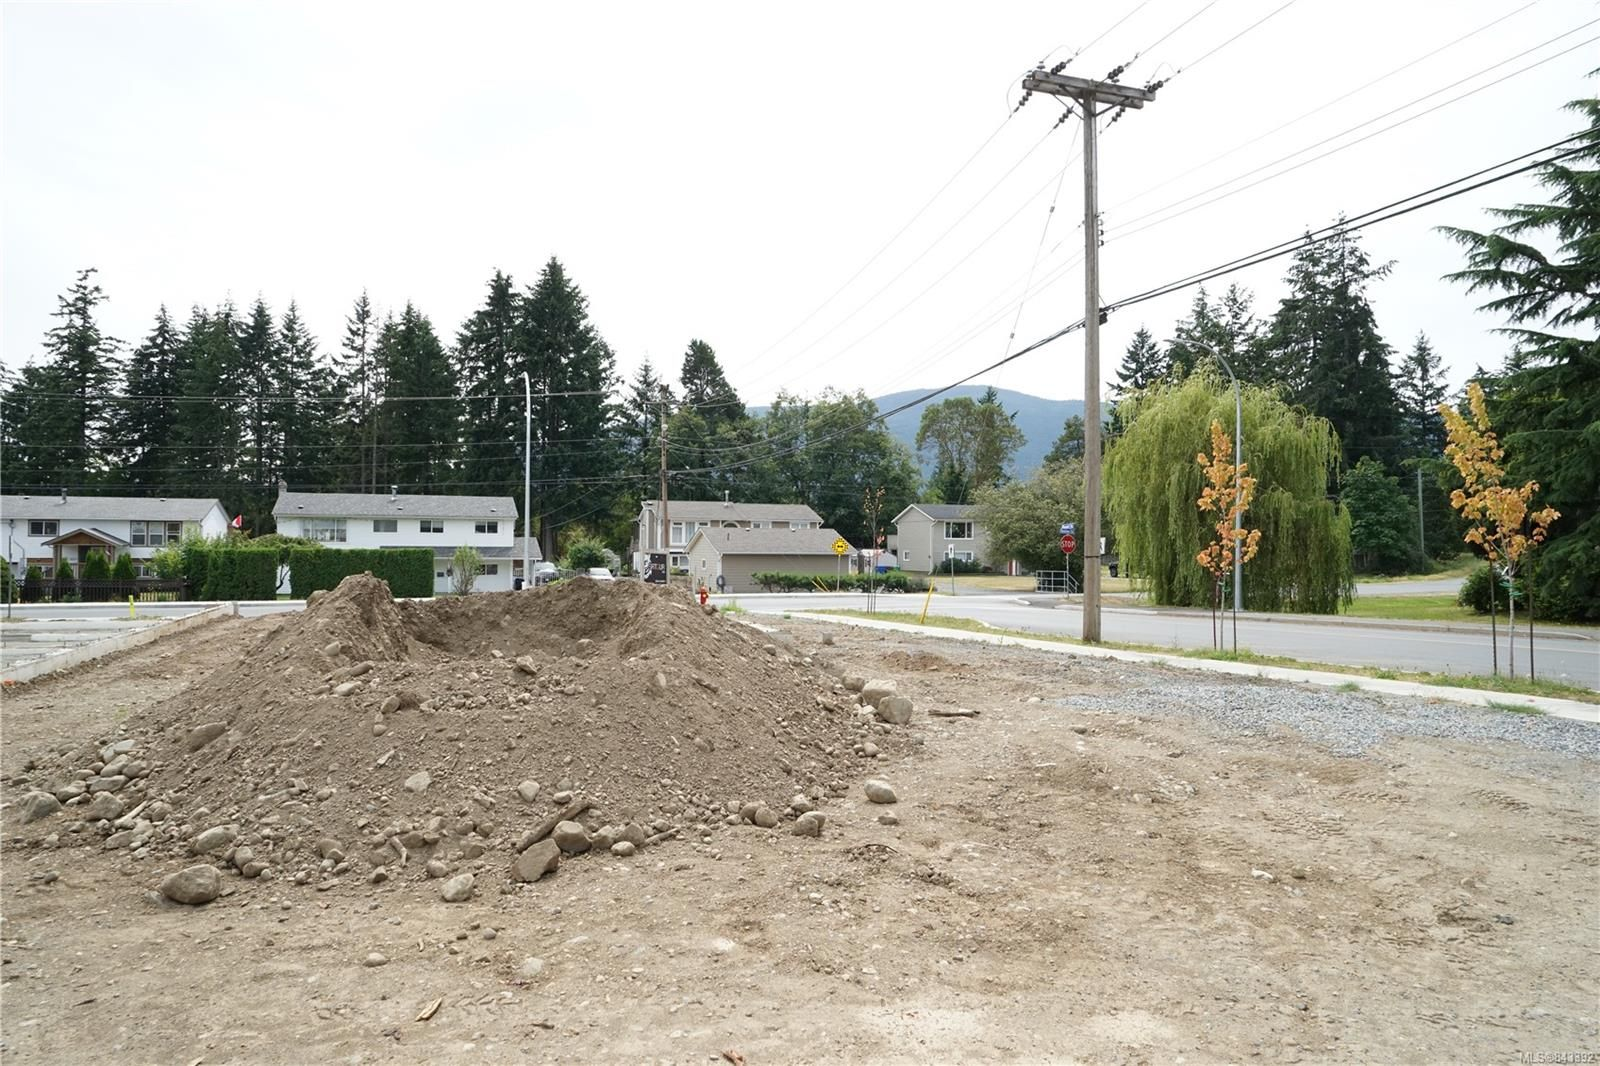 Photo 8: Photos: 2584 Rosstown Rd in NANAIMO: Na Diver Lake House for sale (Nanaimo)  : MLS®# 843392